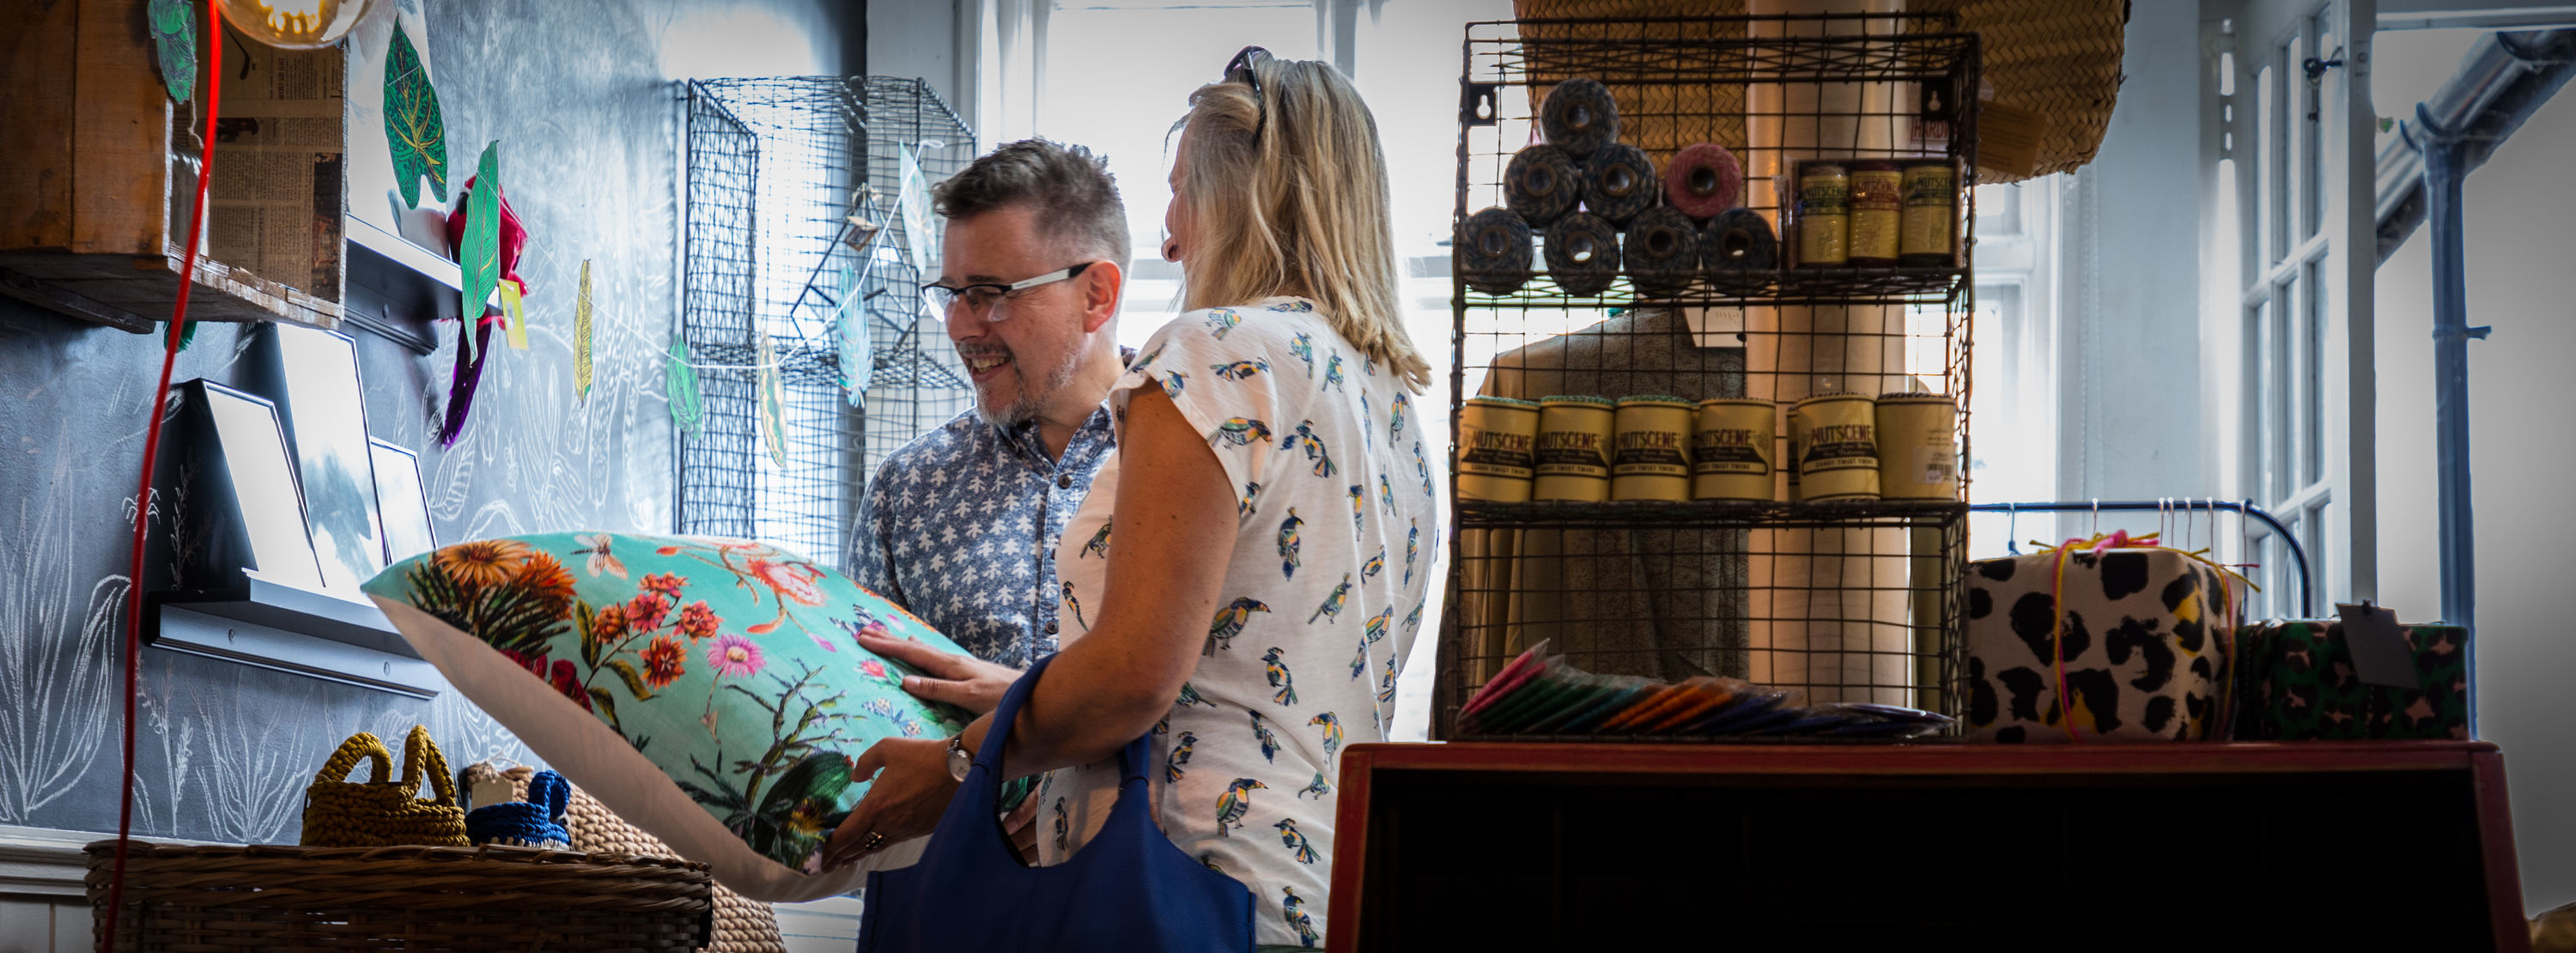 Spend an afternoon exploring the independent shops